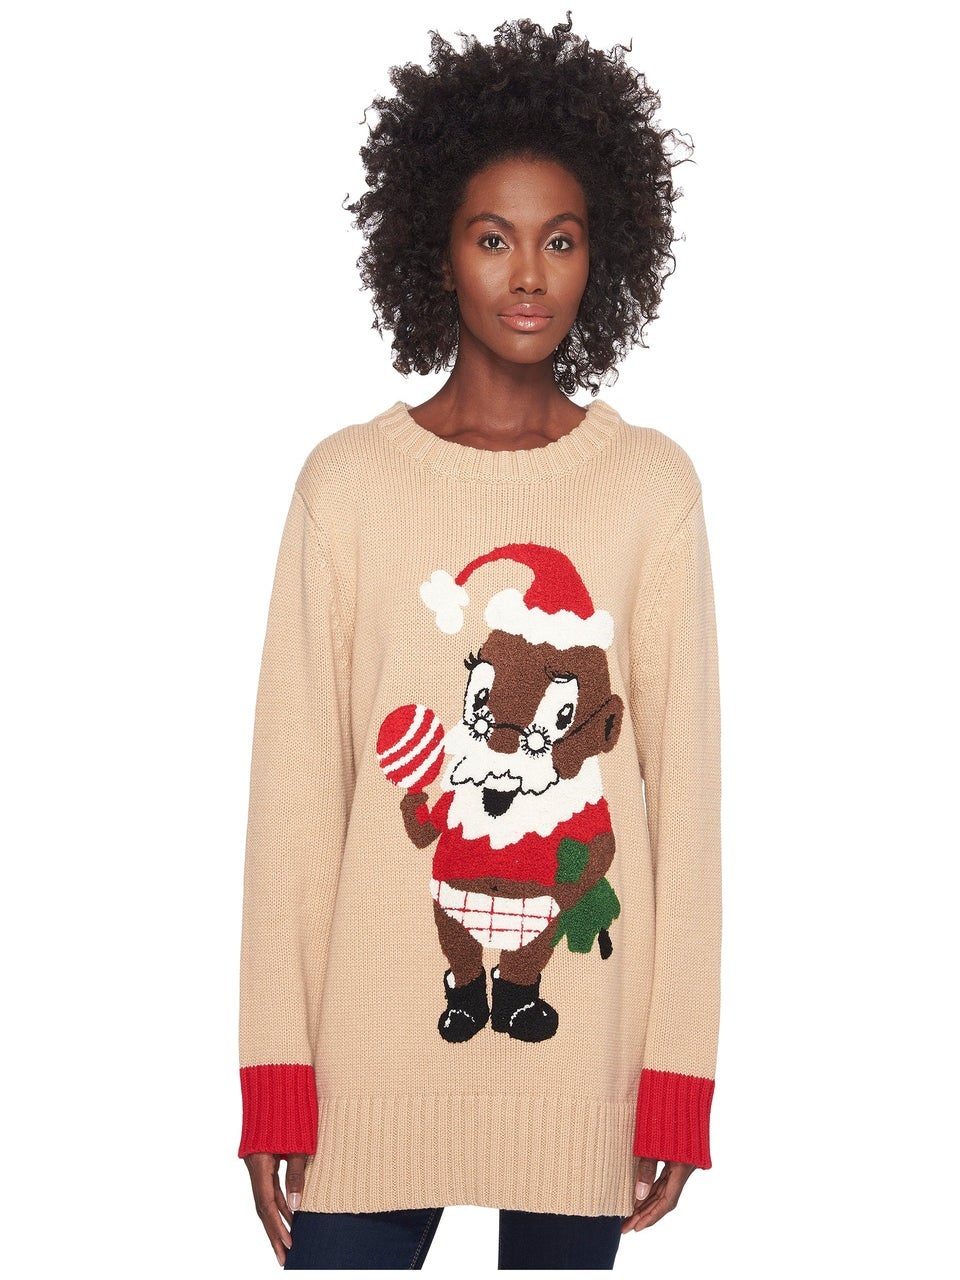 Guys, Whoopi Goldberg Makes The Best Christmas Sweaters, Seriously